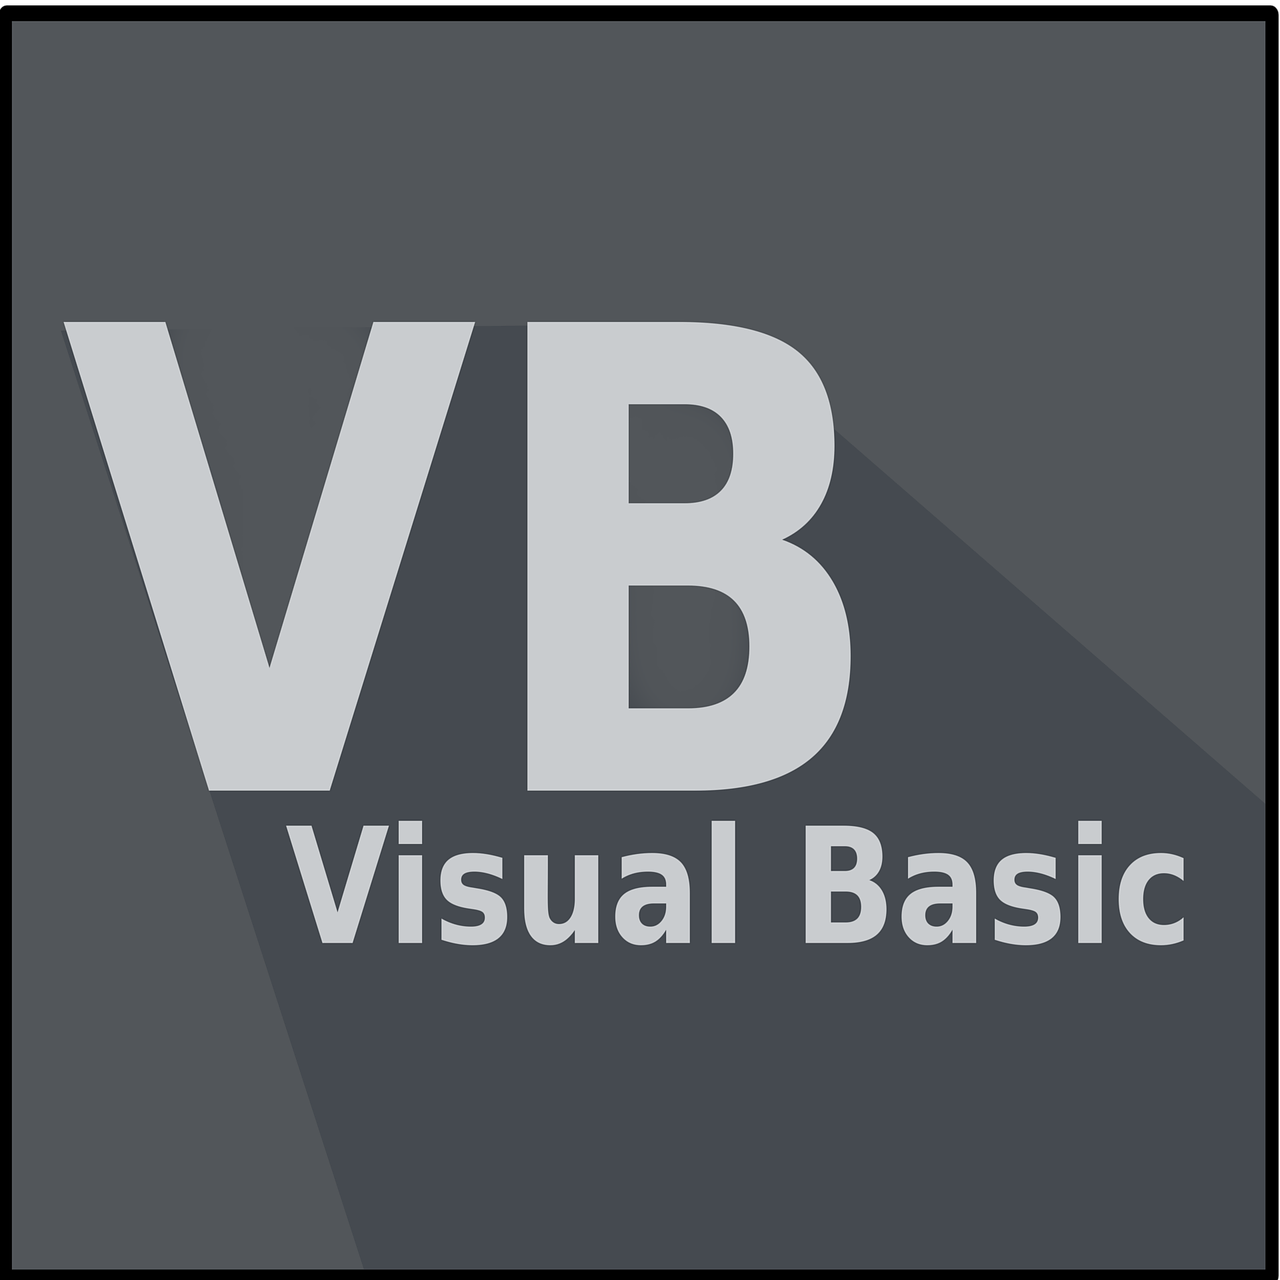 visual basic programming language free photo